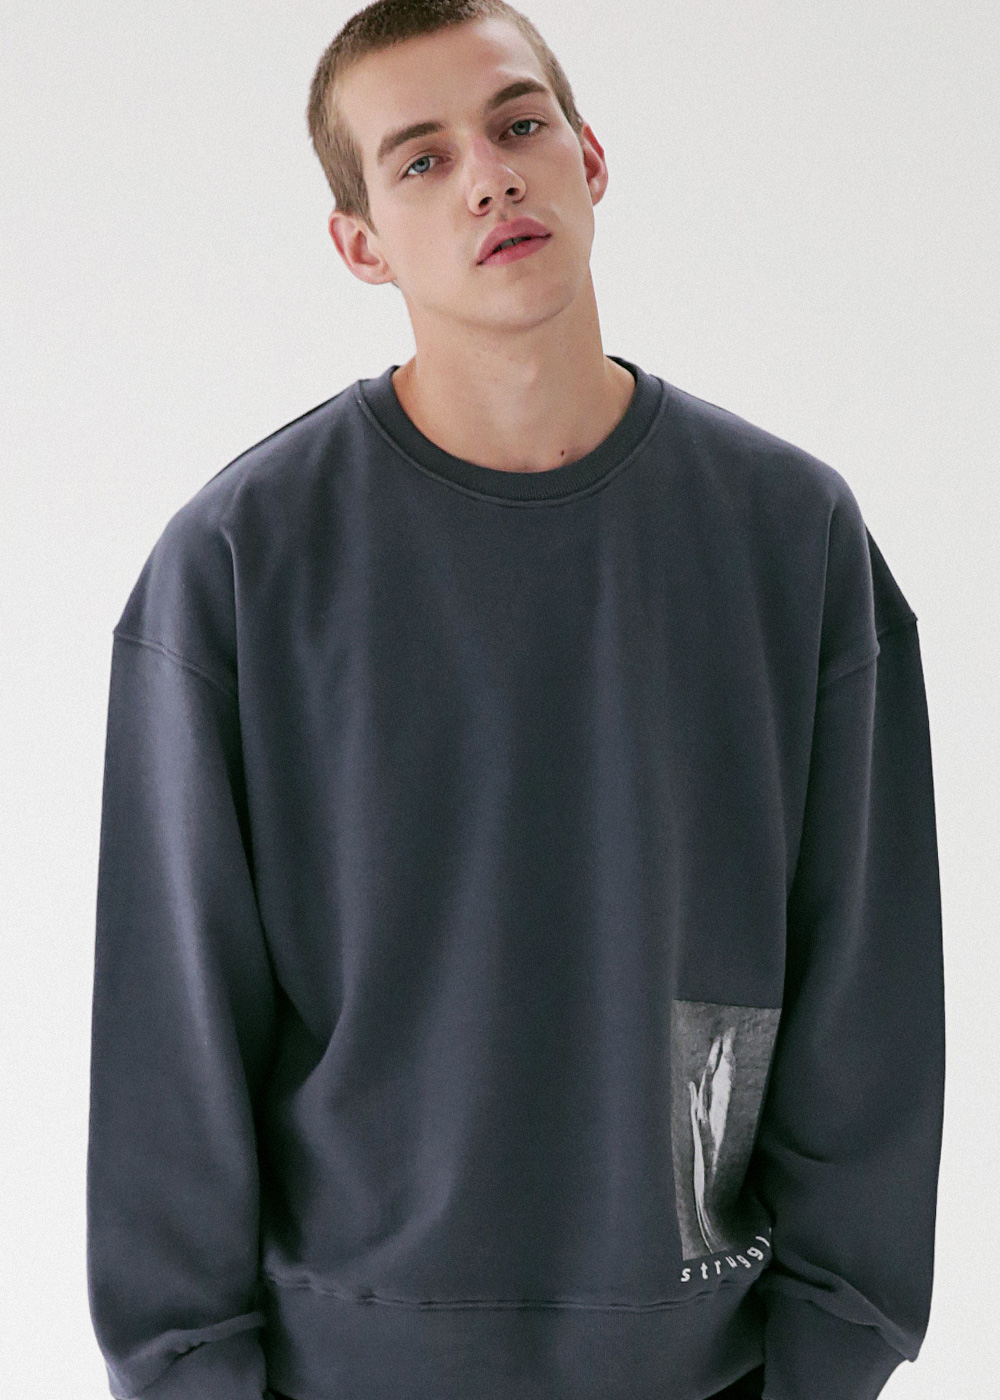 HAND IN SAND CREWNECK MFVCR003-DG